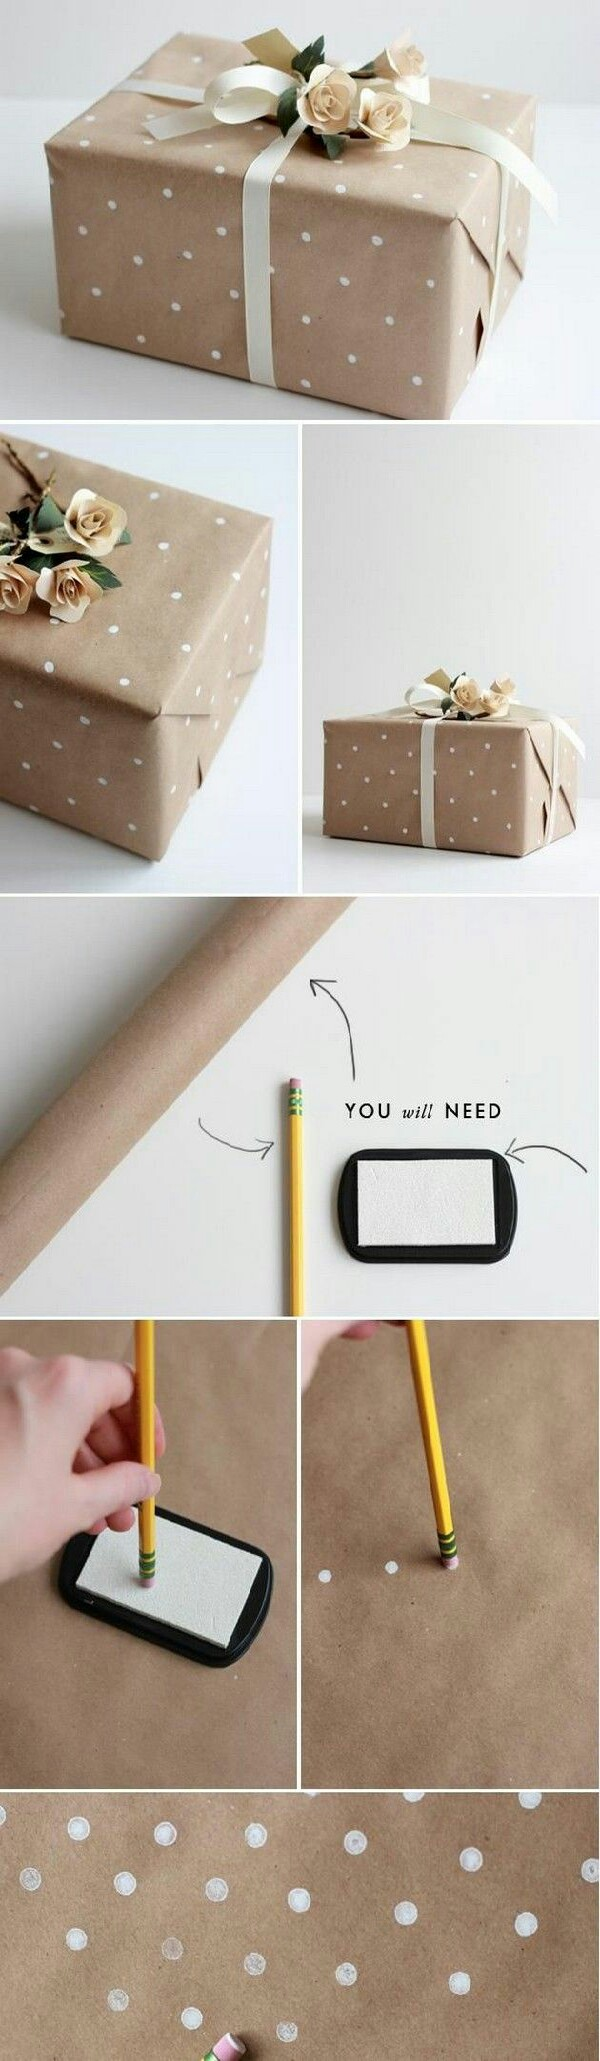 You'll need Plain paper , pencil with a rubber behind and white stamp pad. you can find in Amazon. You can also change the sheet color. Black looks awesome too.